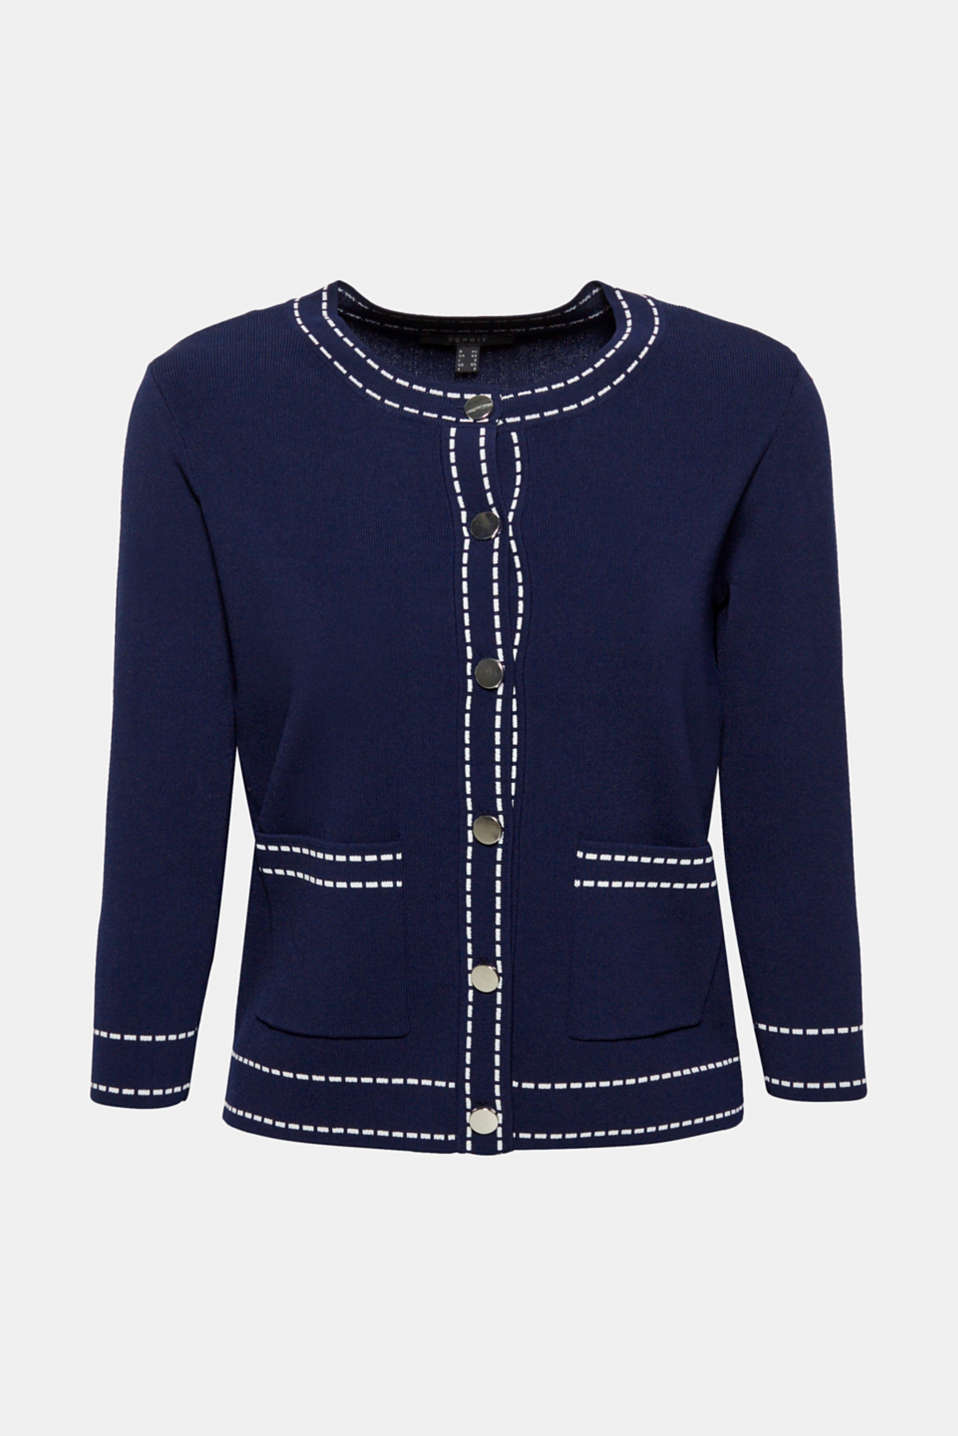 Cardigan with contrasting details, NAVY, detail image number 7